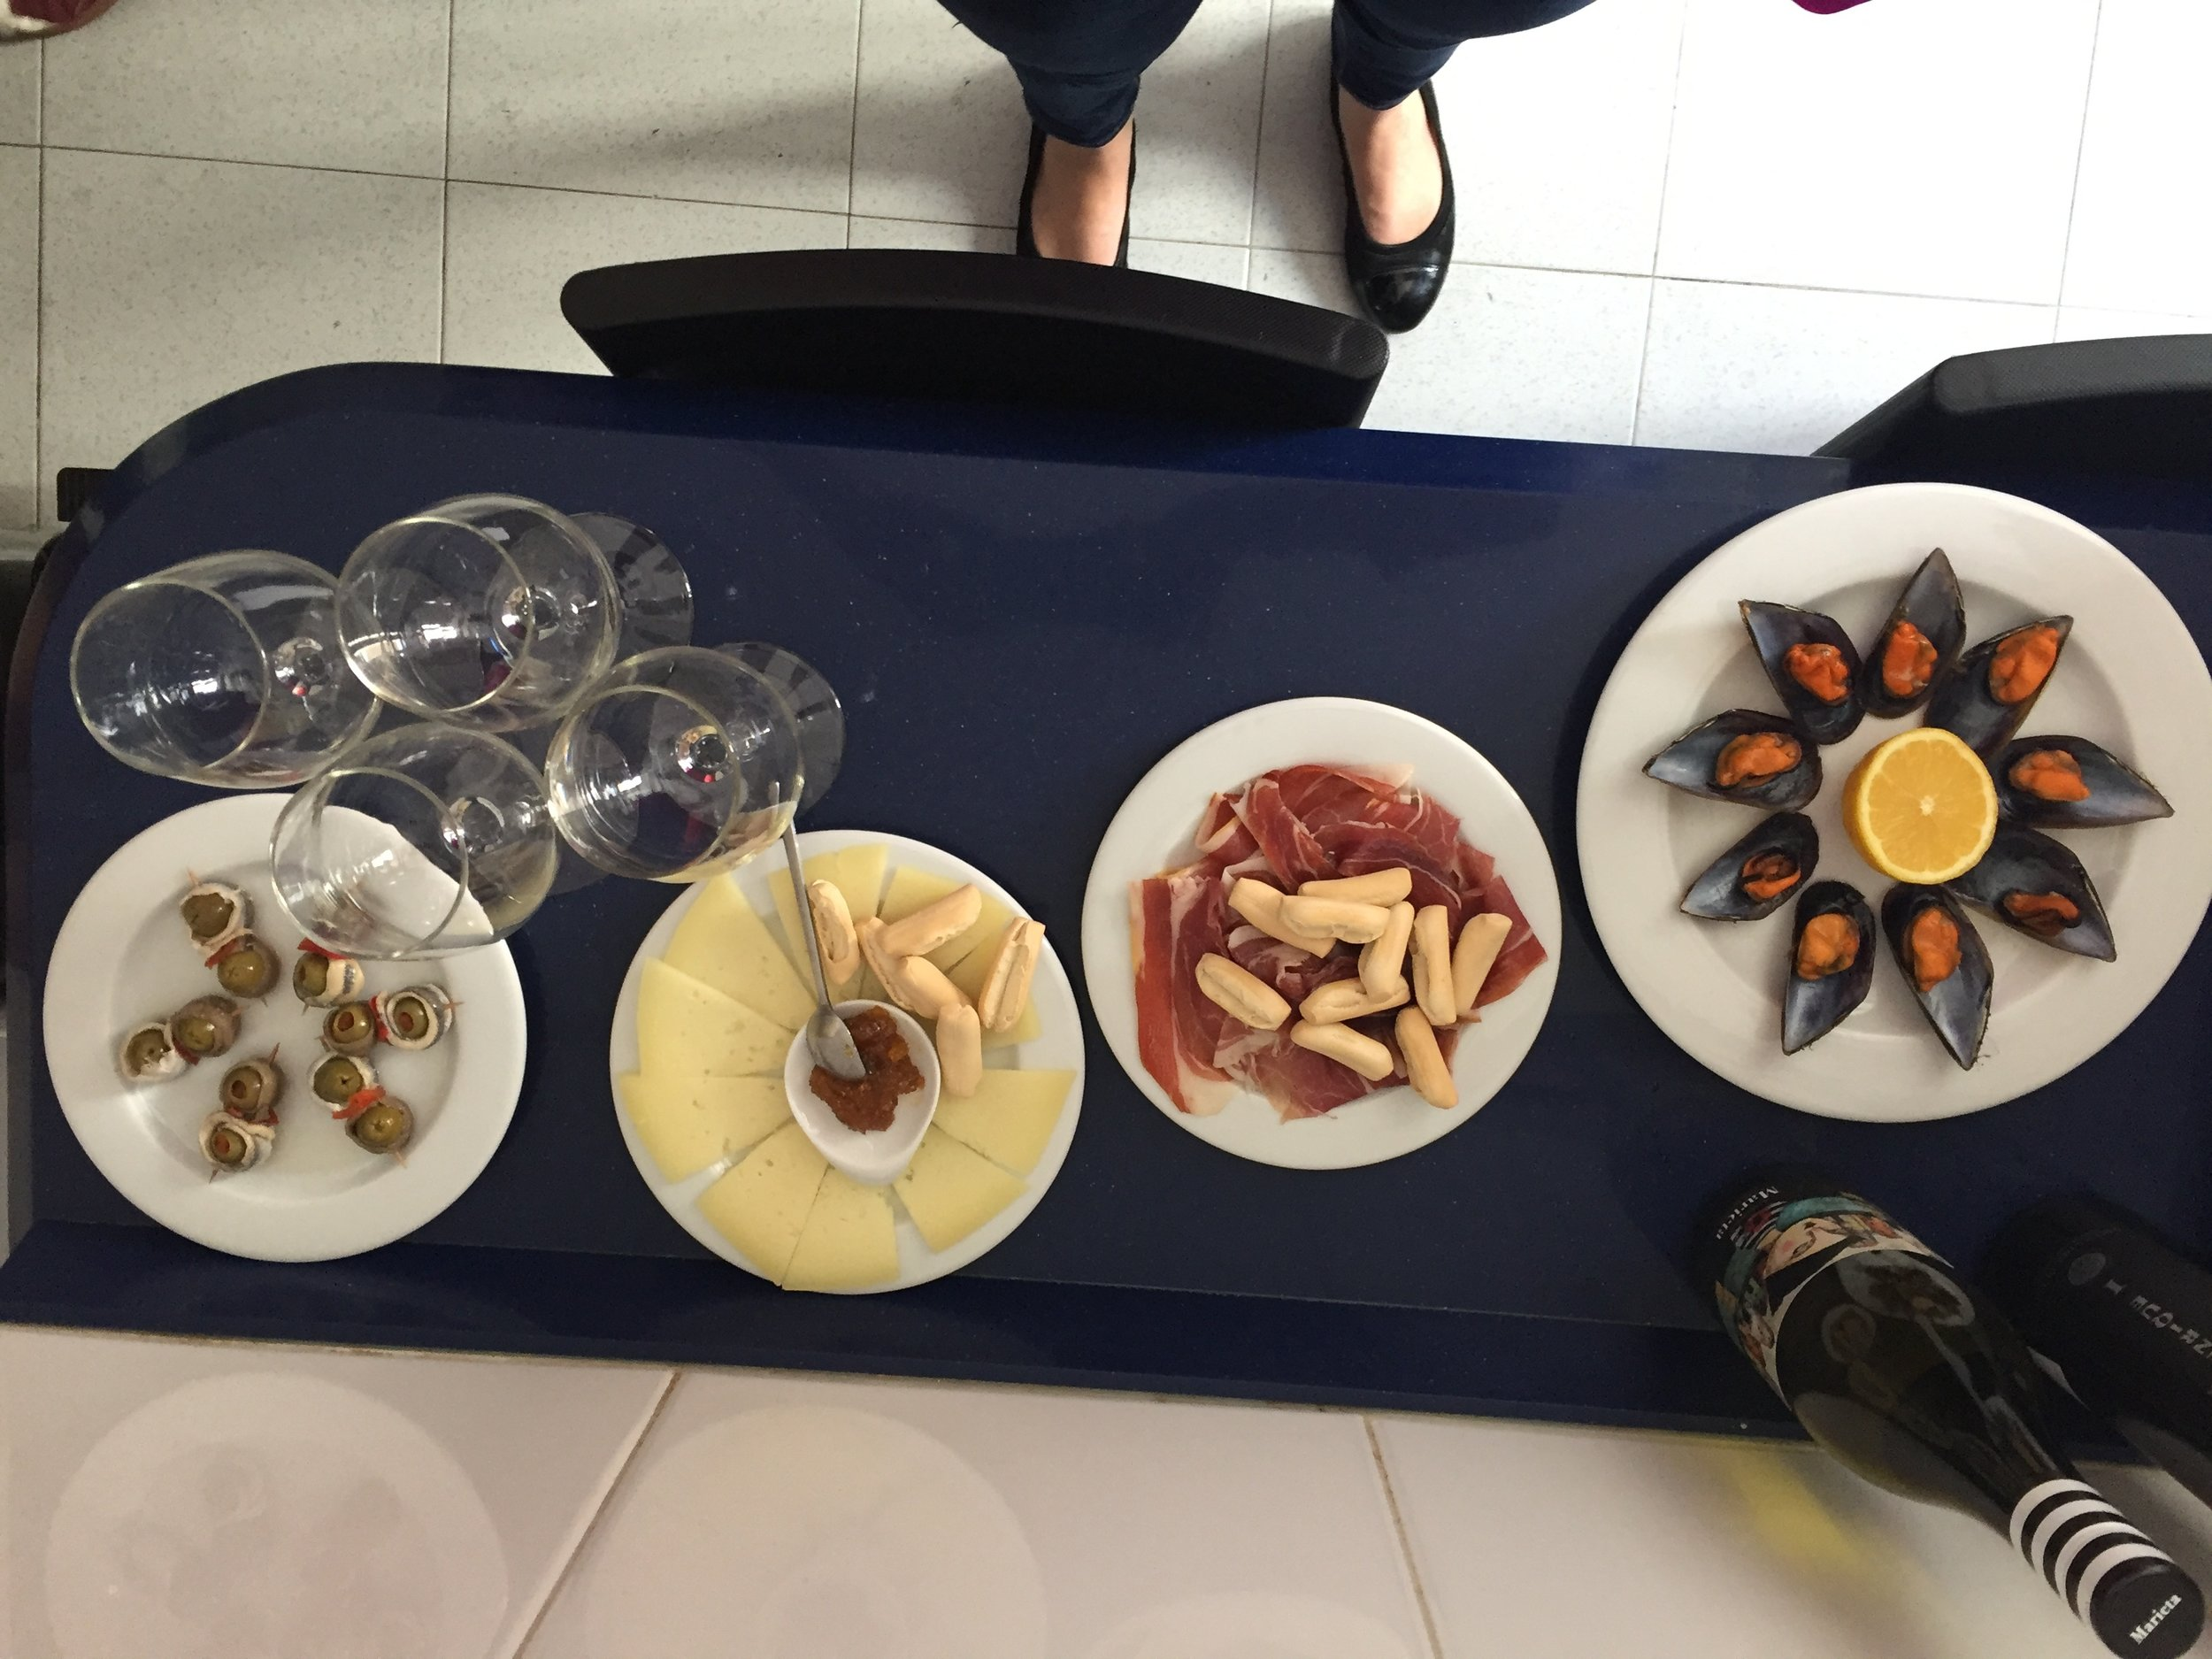 Amazing pre-lunch tapas at my  EatWith  host's home. I highly recommend EatWith as a way to experience local culture, support residents of the city you are visiting and meet other travelers.